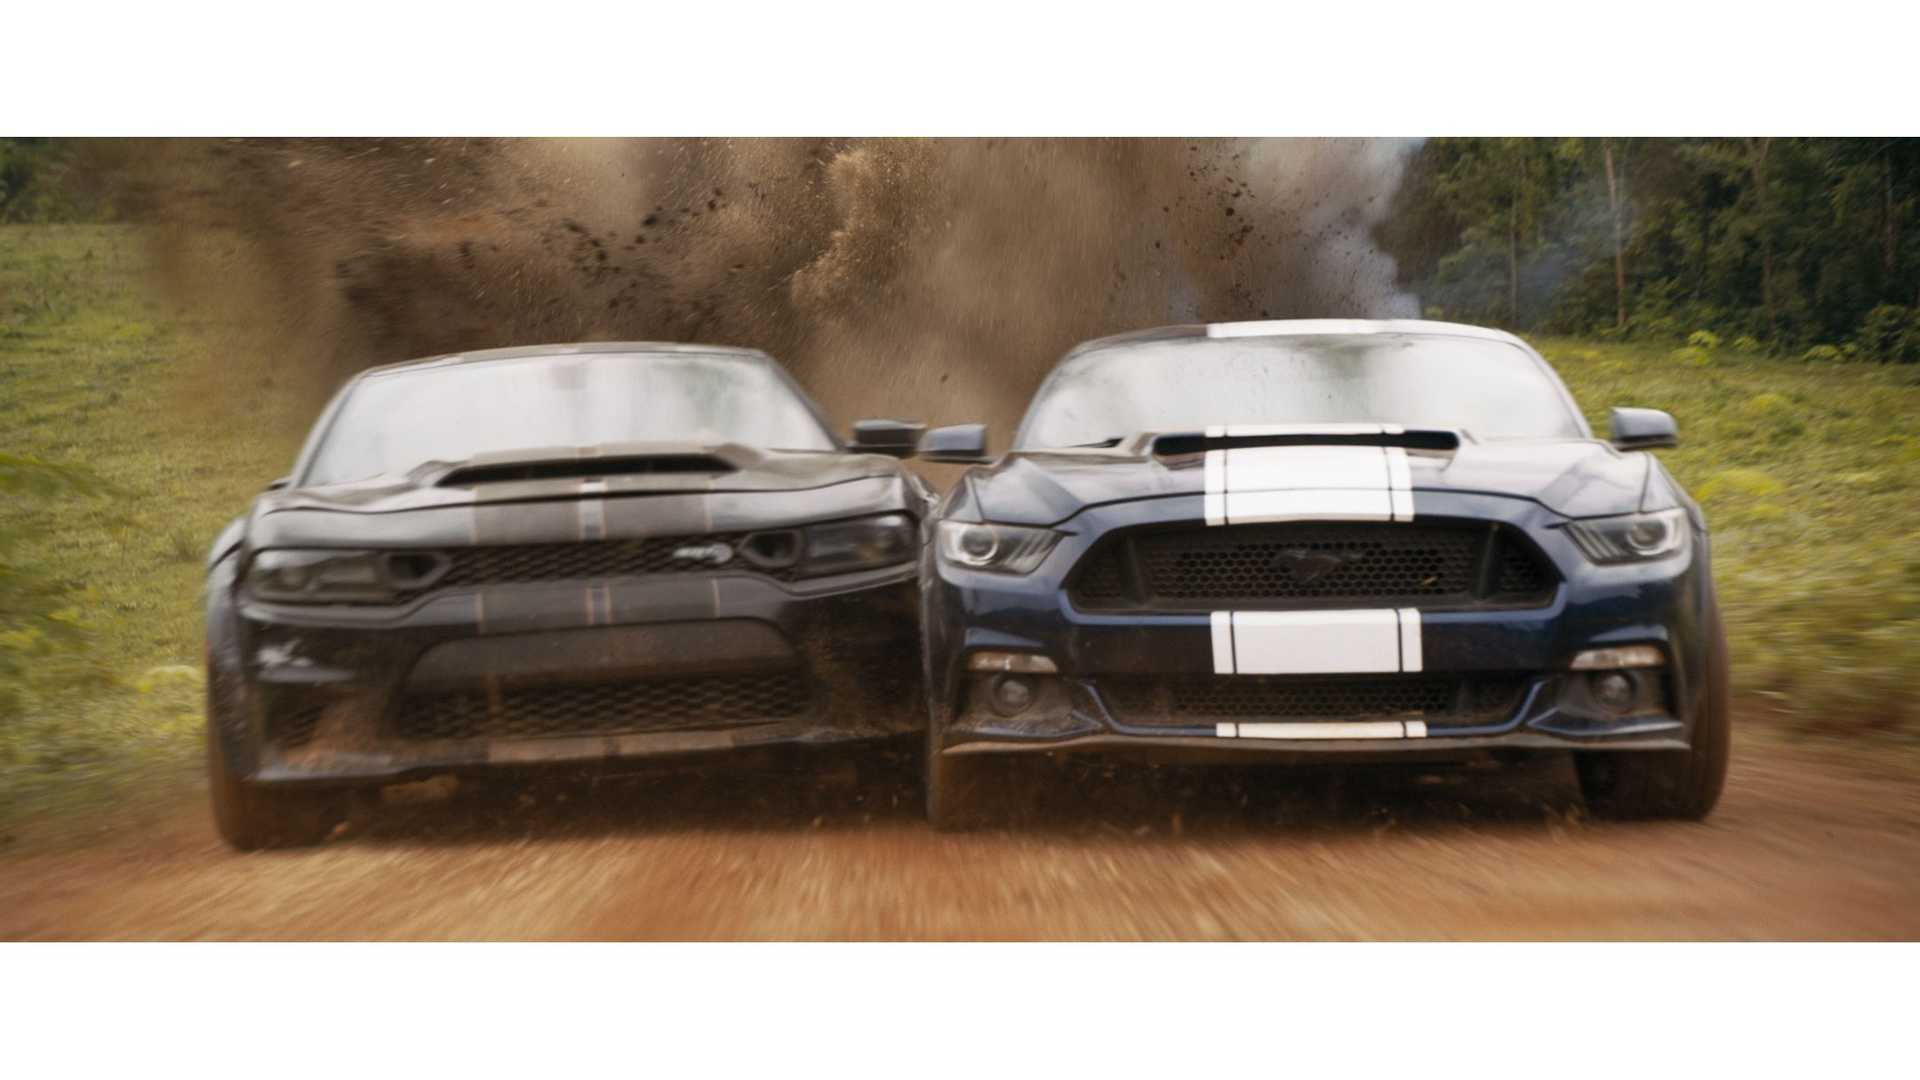 dom-s-2018-dodge-charger-and-jakob-s-2016-ford-mustang